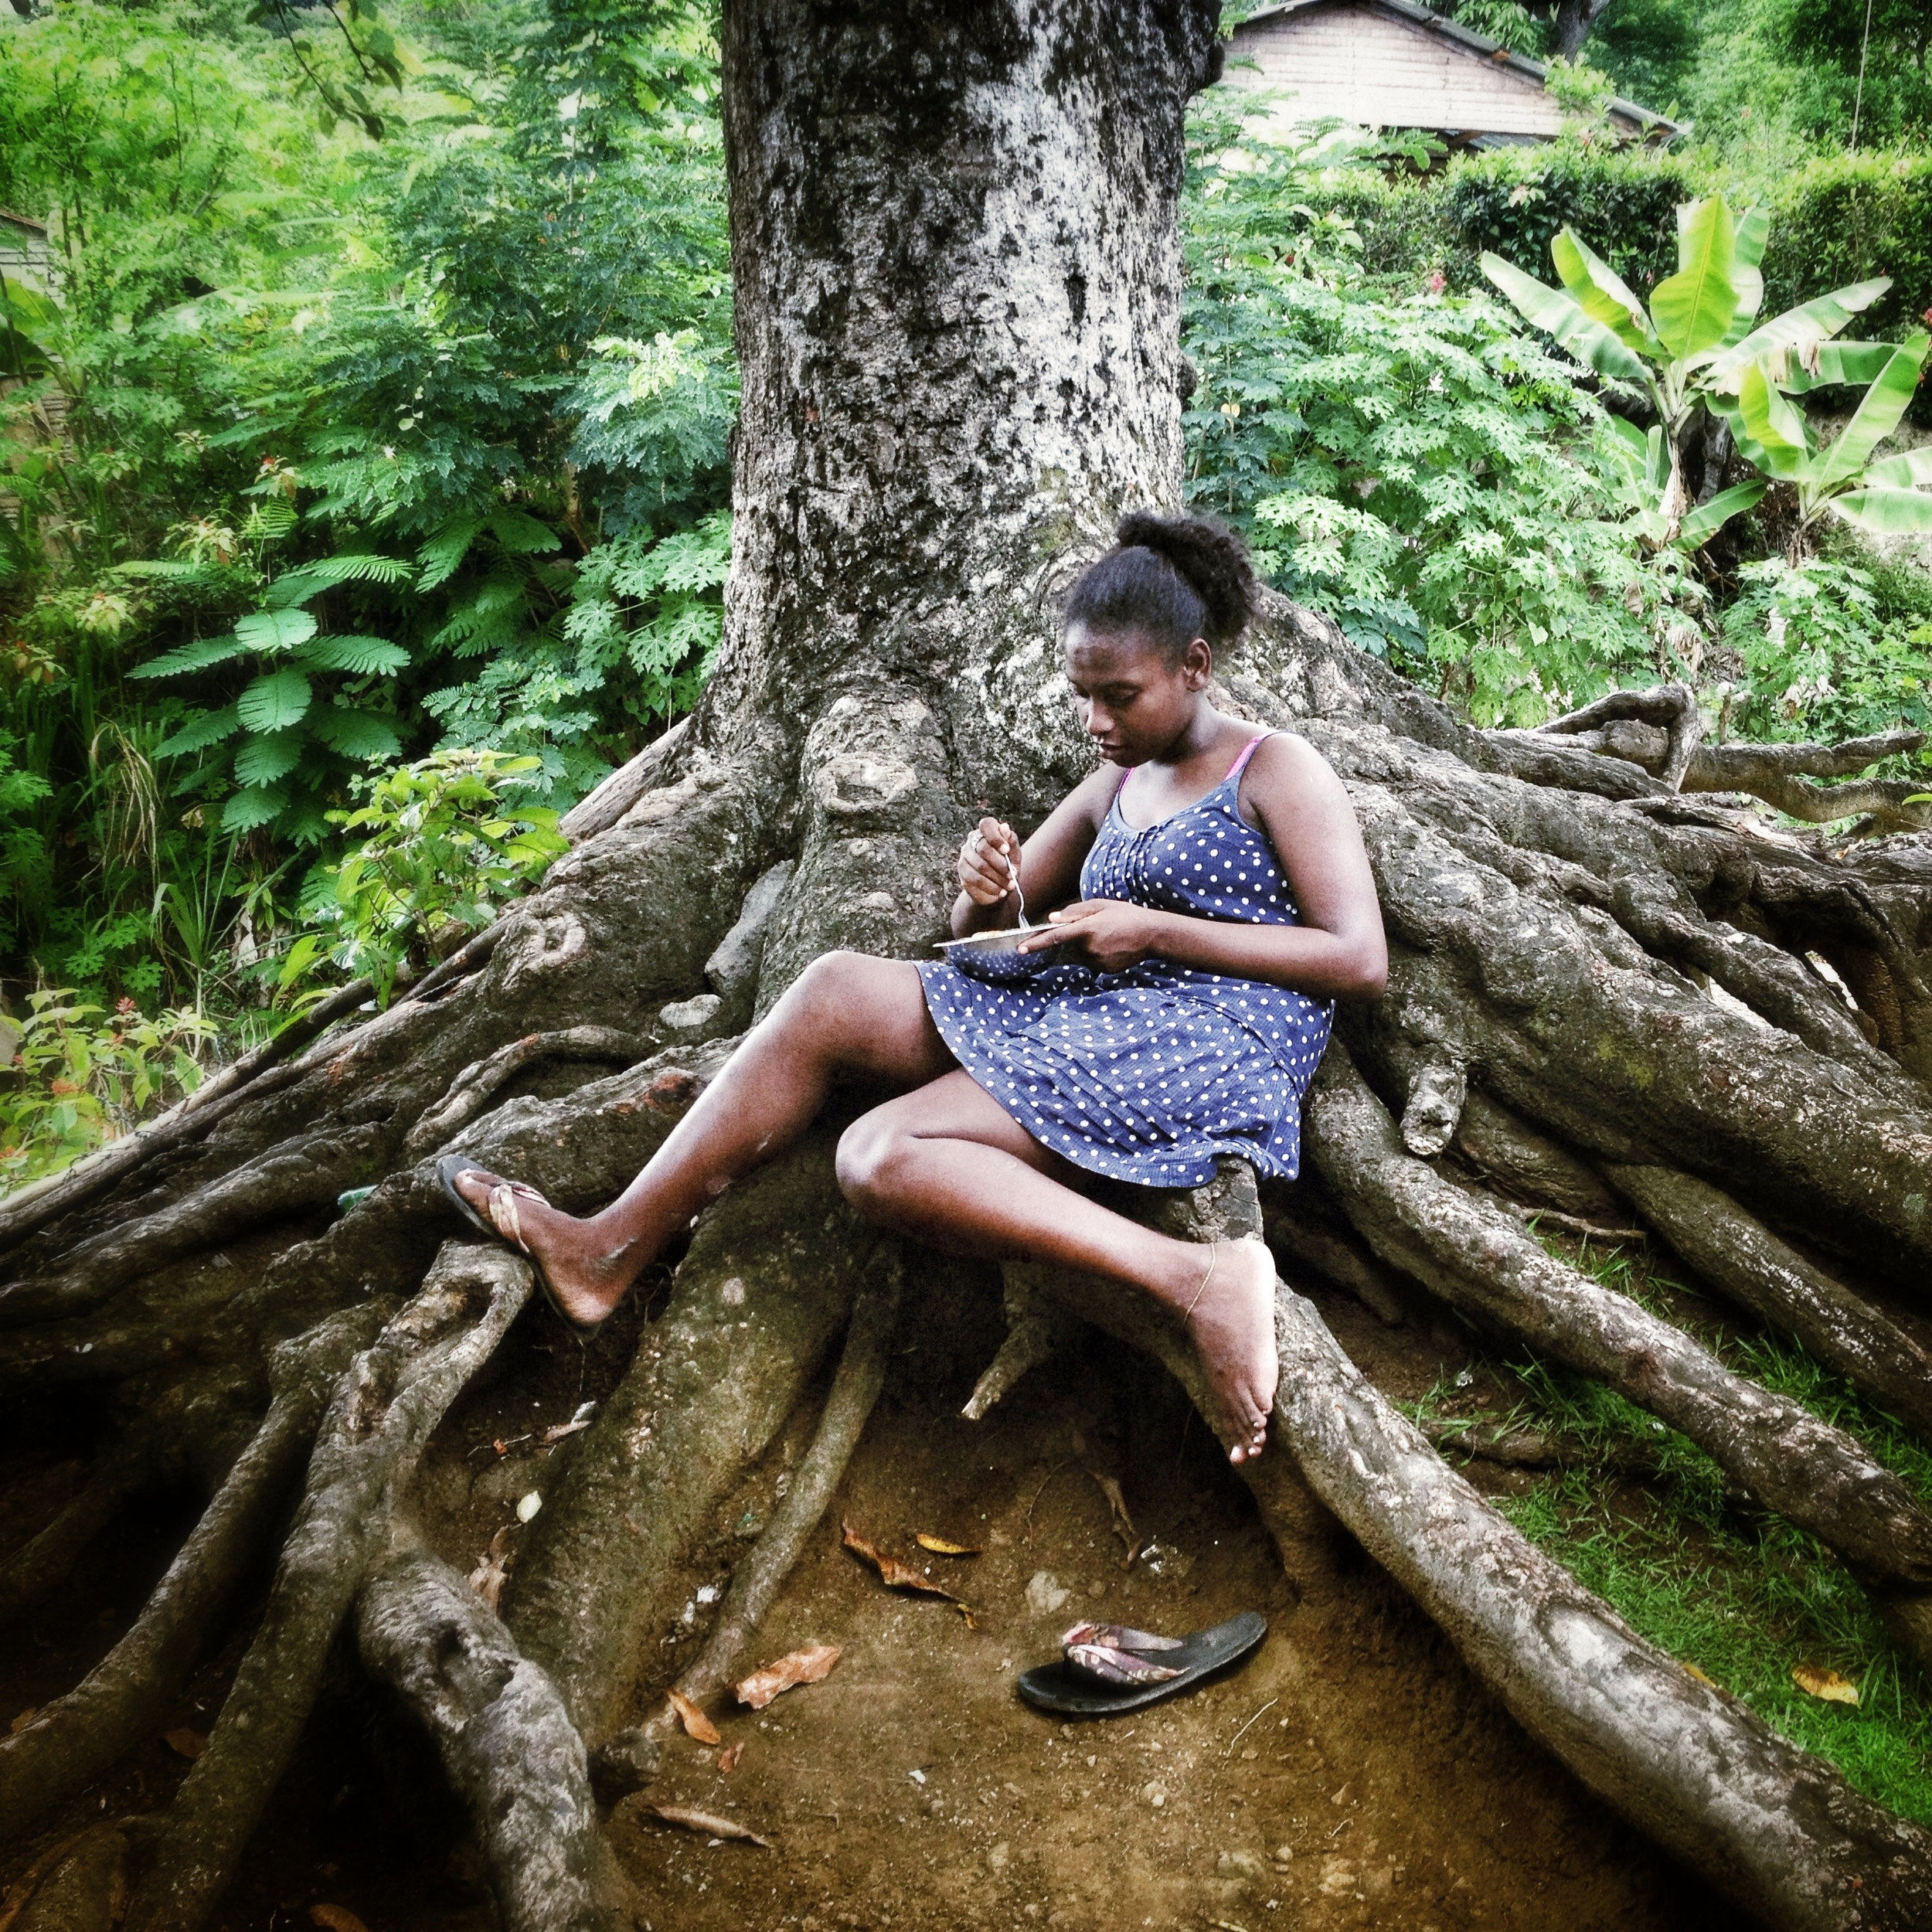 Yessica, 16, has lunch under the mango tree in the patio of her grandmother's house on the last day of her visit in Mucha Agua, San Cristobal, Dominican Republic. She has spent the summer there and is now returning to her mother in another town for the beginning of the school year. (Tatiana Fernandez Geara)